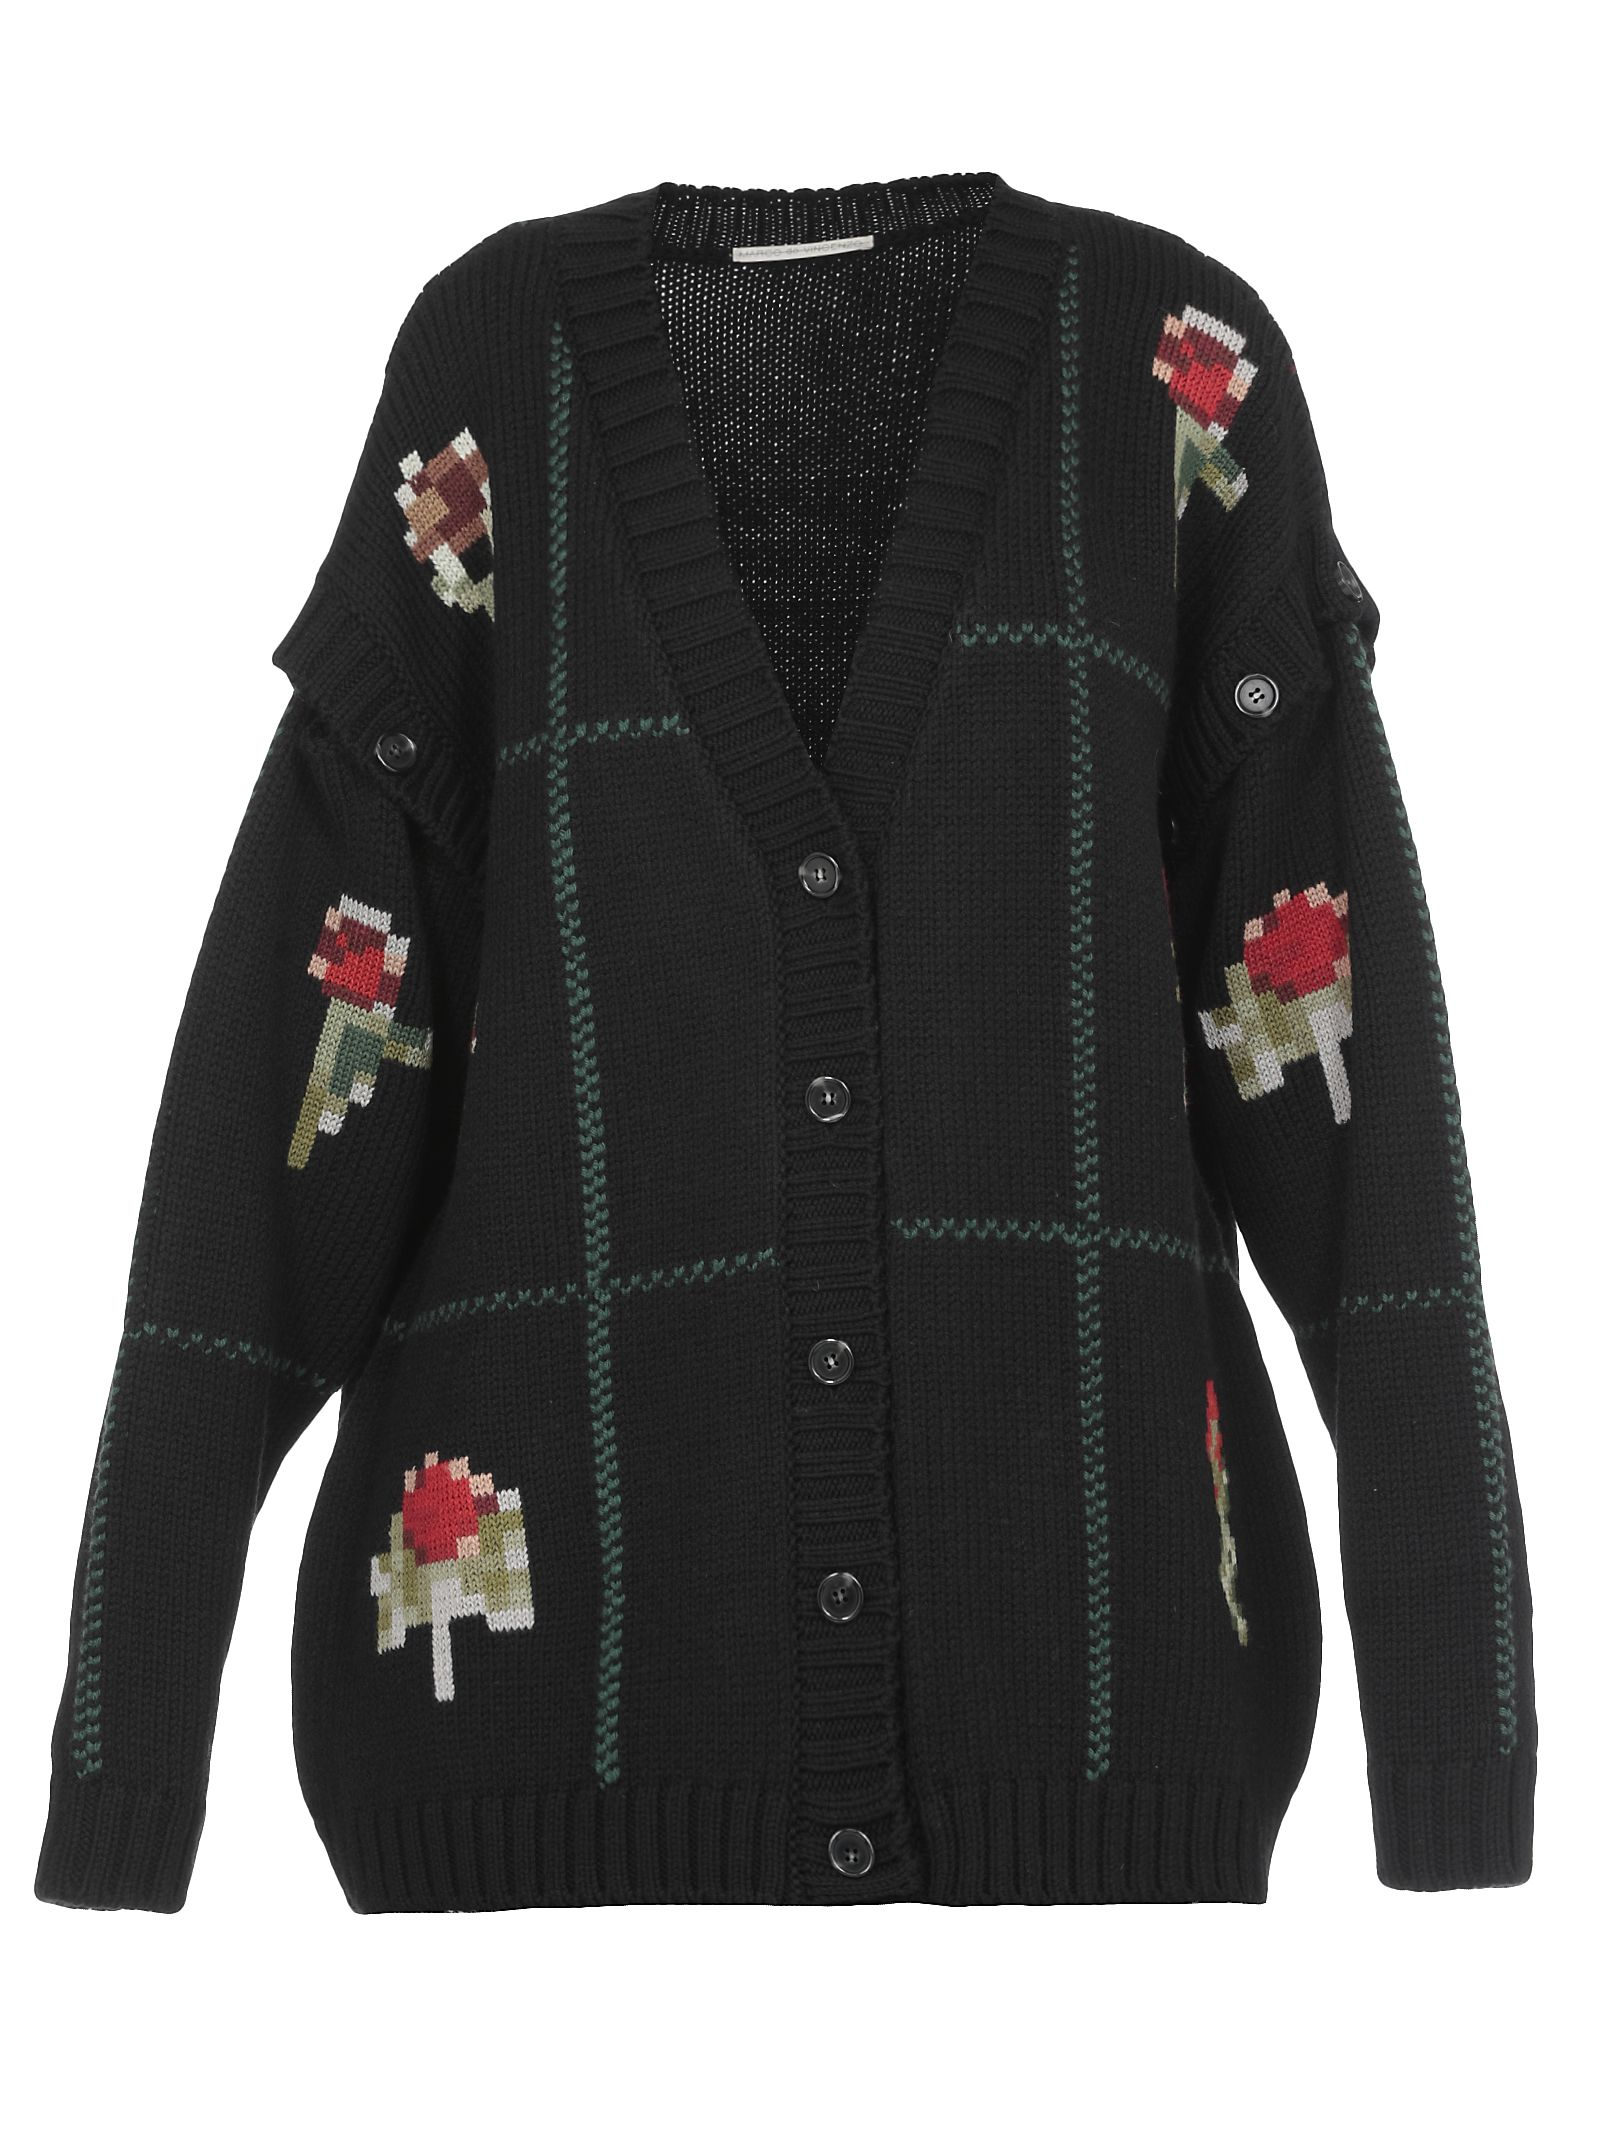 Marco De Vincenzo KNITTED CARDIGAN